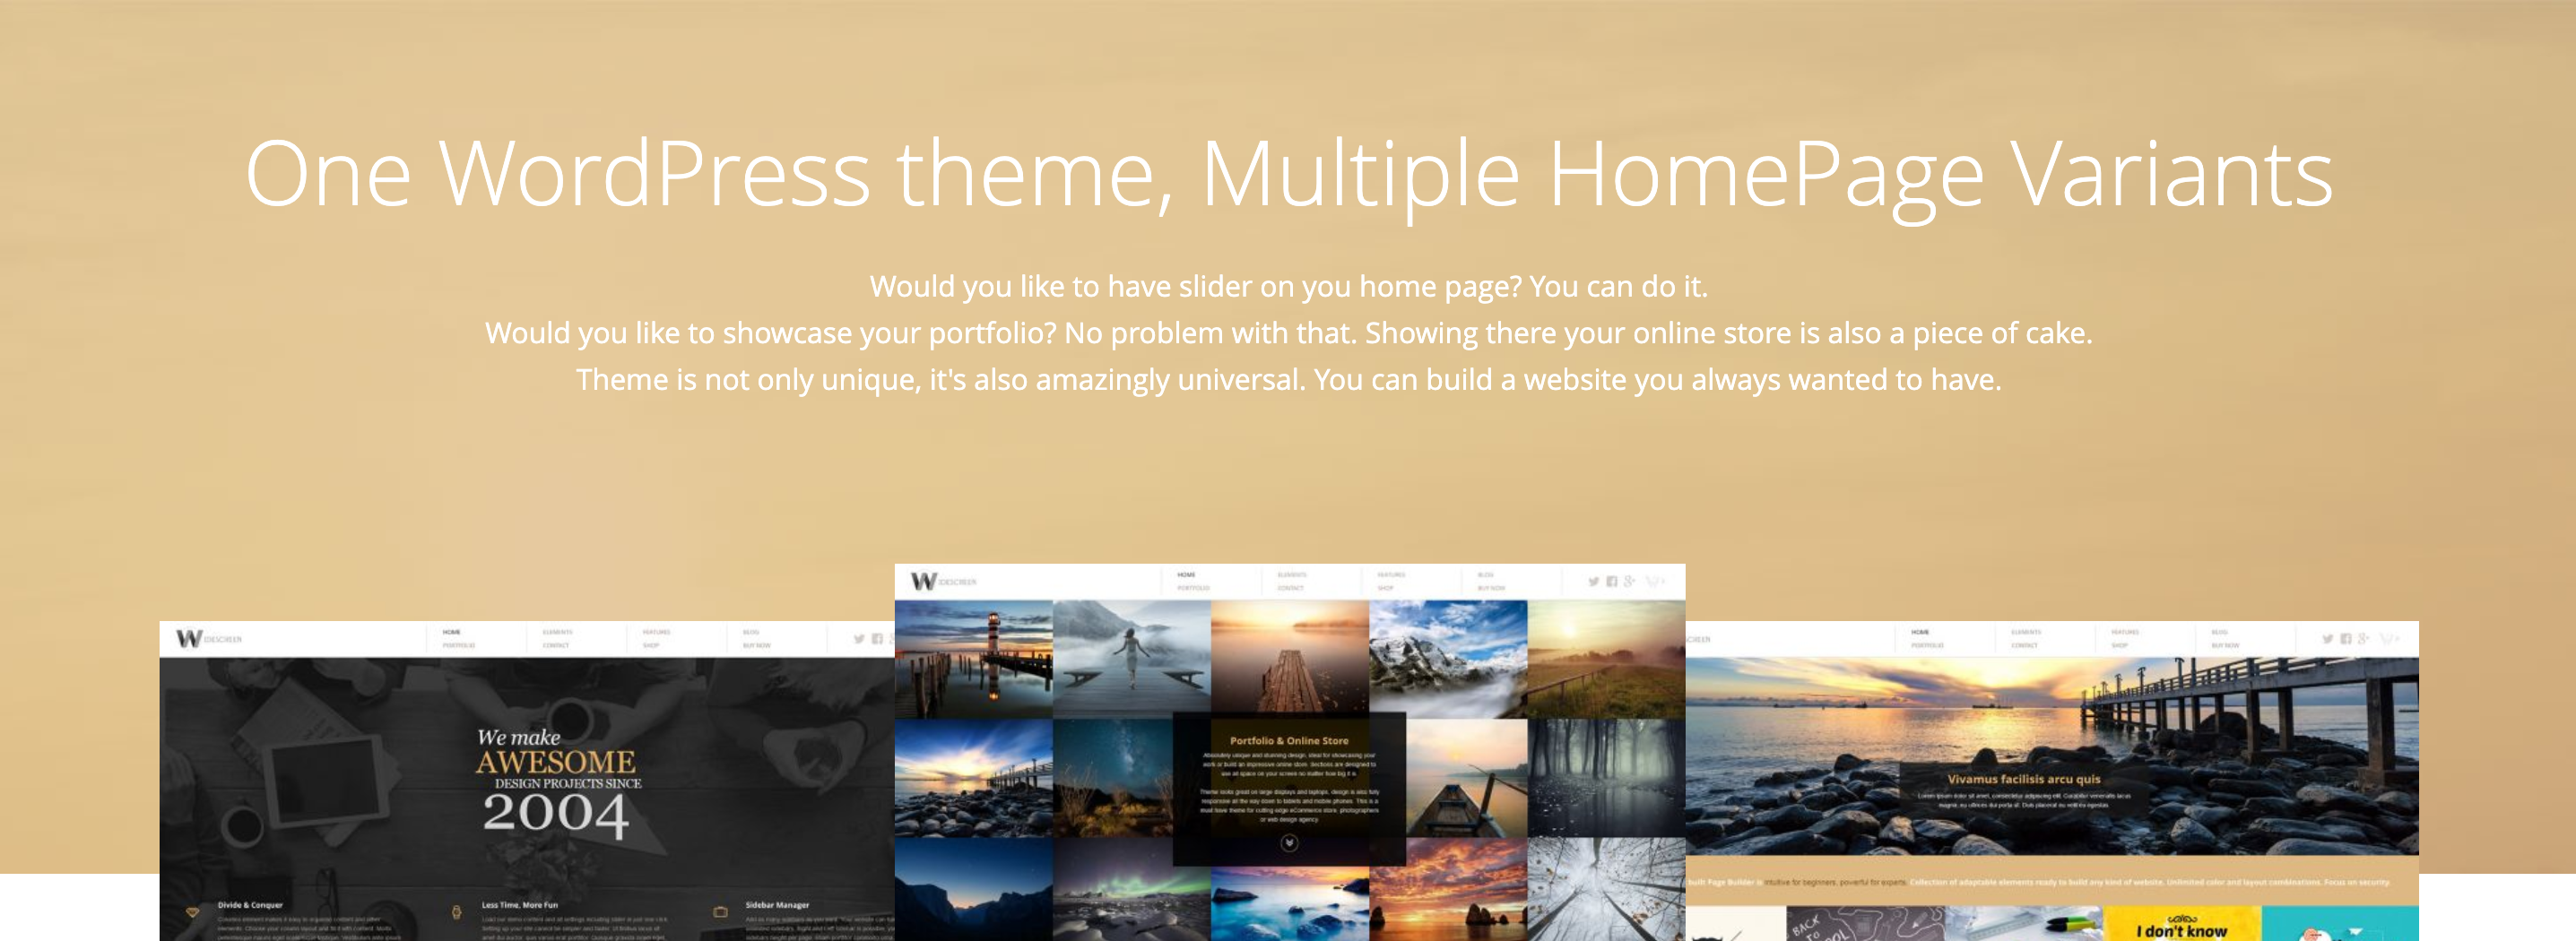 Widescreen WordPress theme home page variants